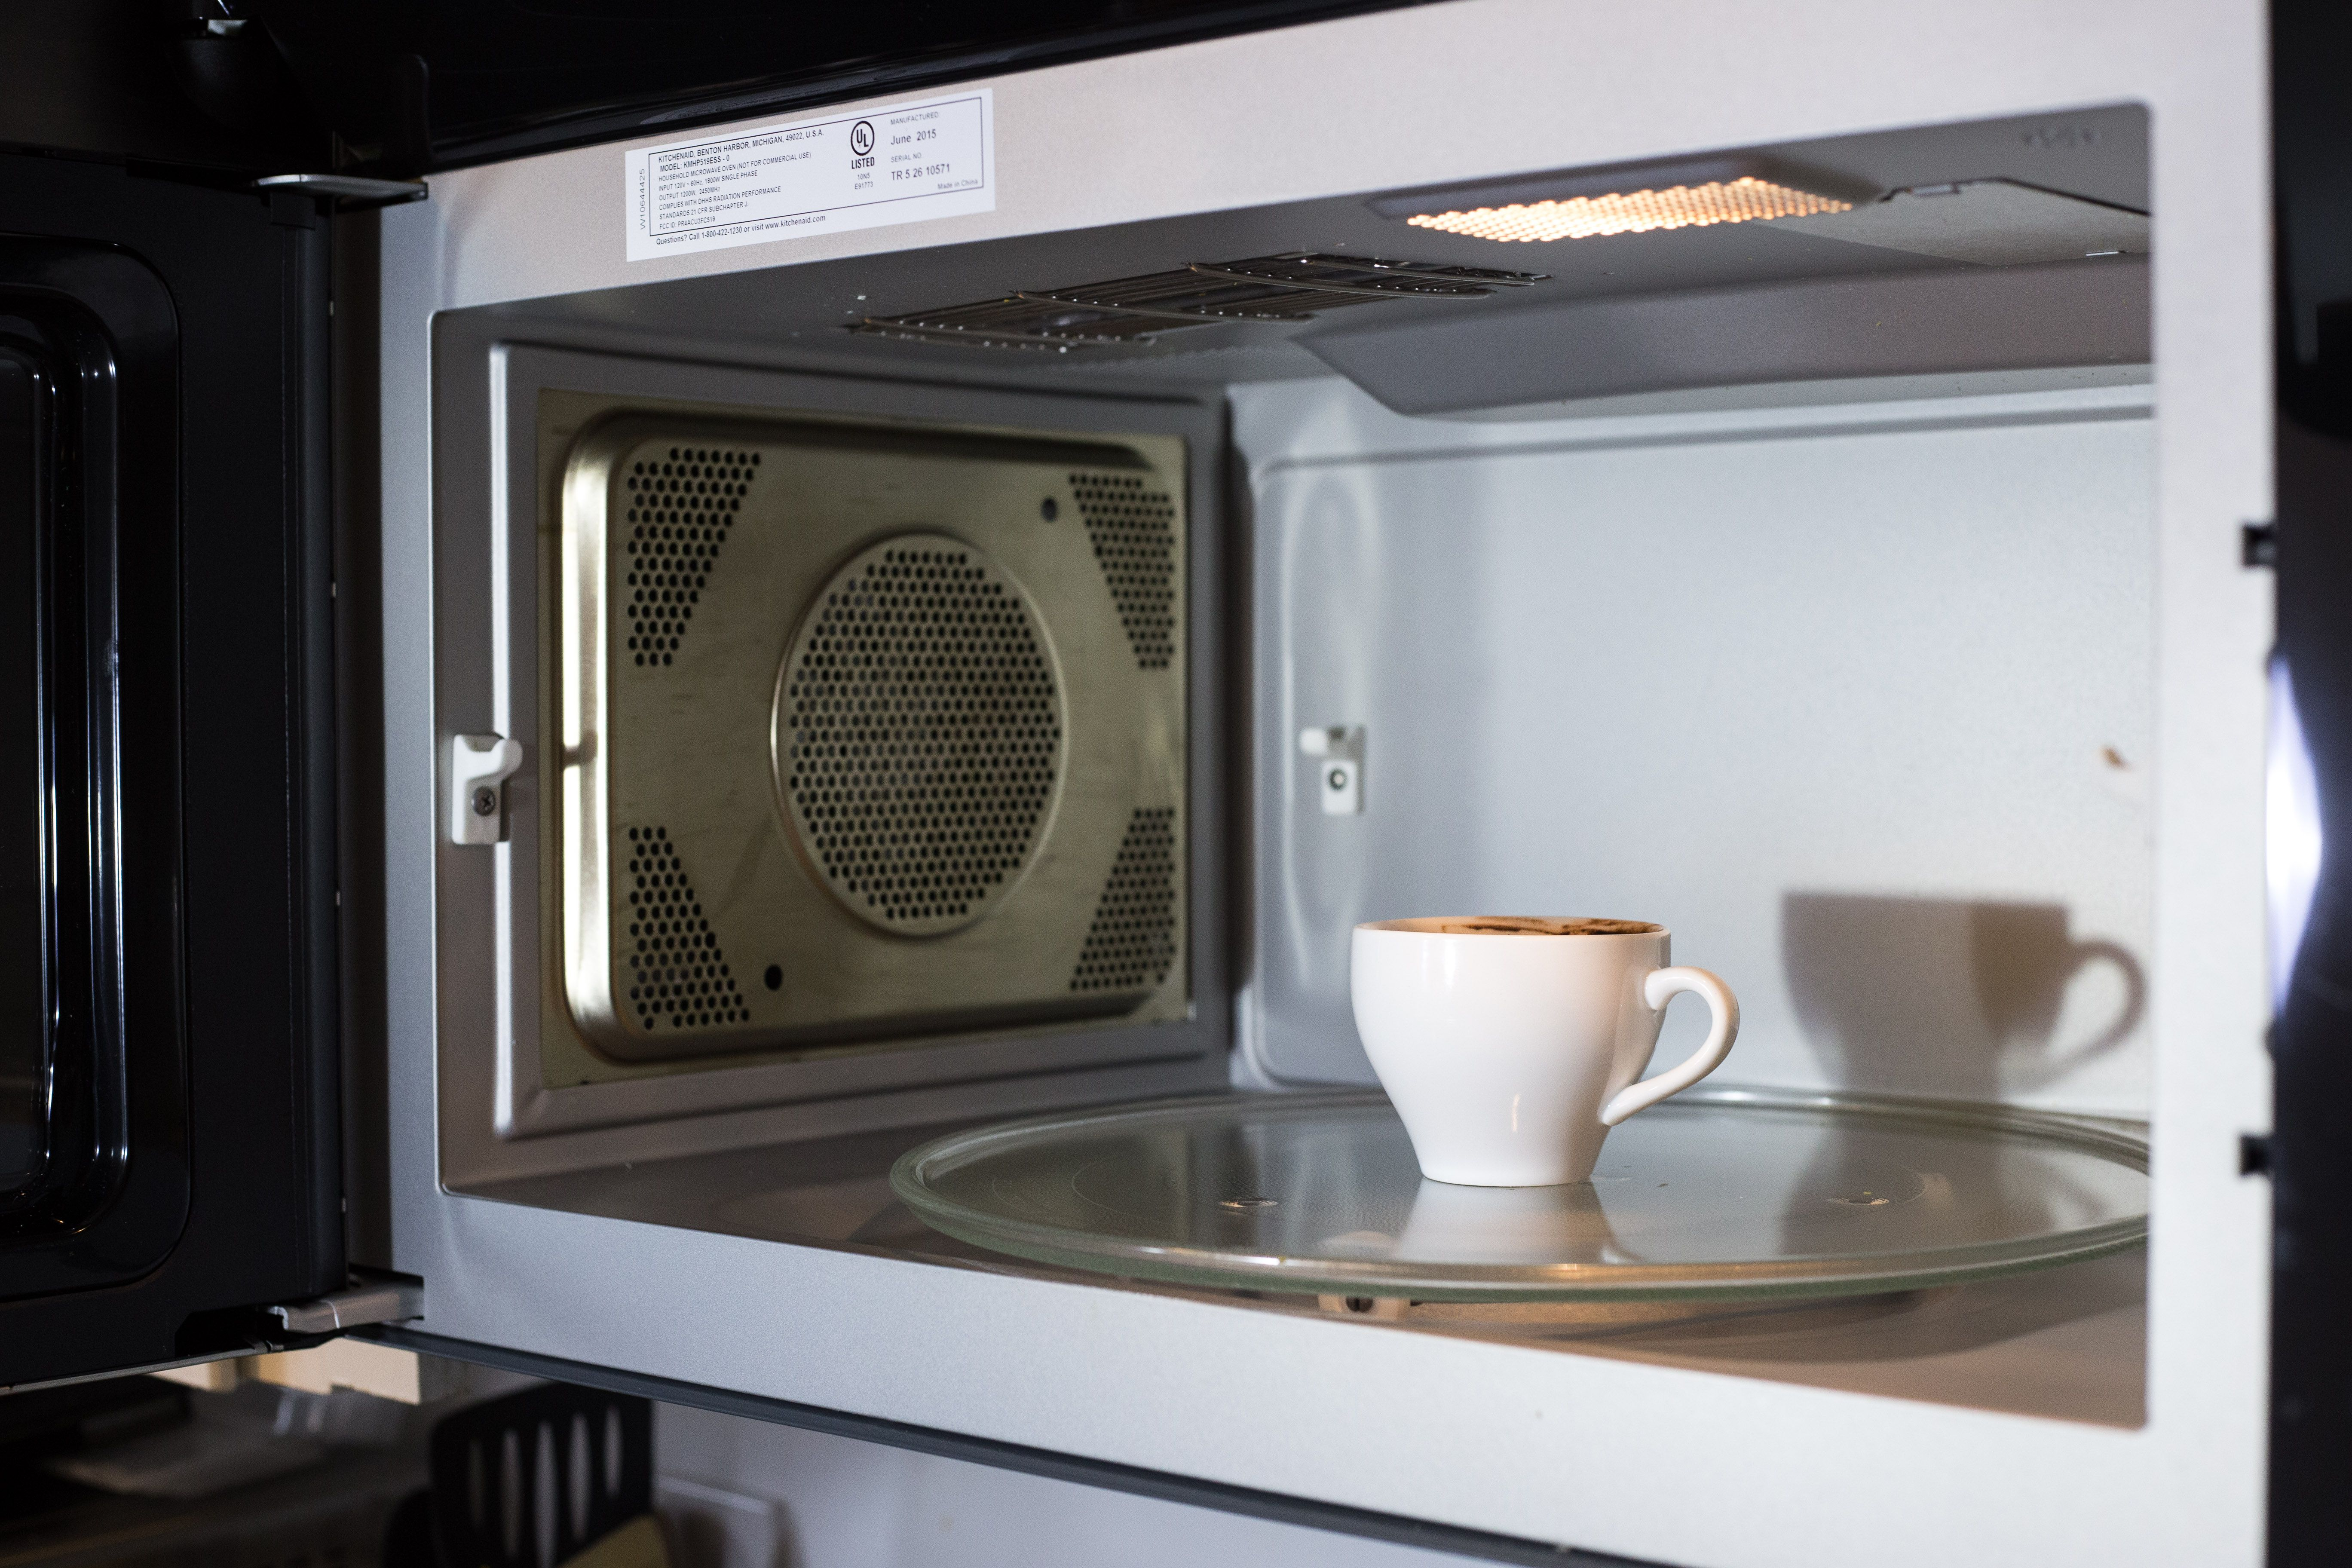 Easy Cake Recipes In Convection Microwave: Celebrate National Whipped Cream Day Today With A